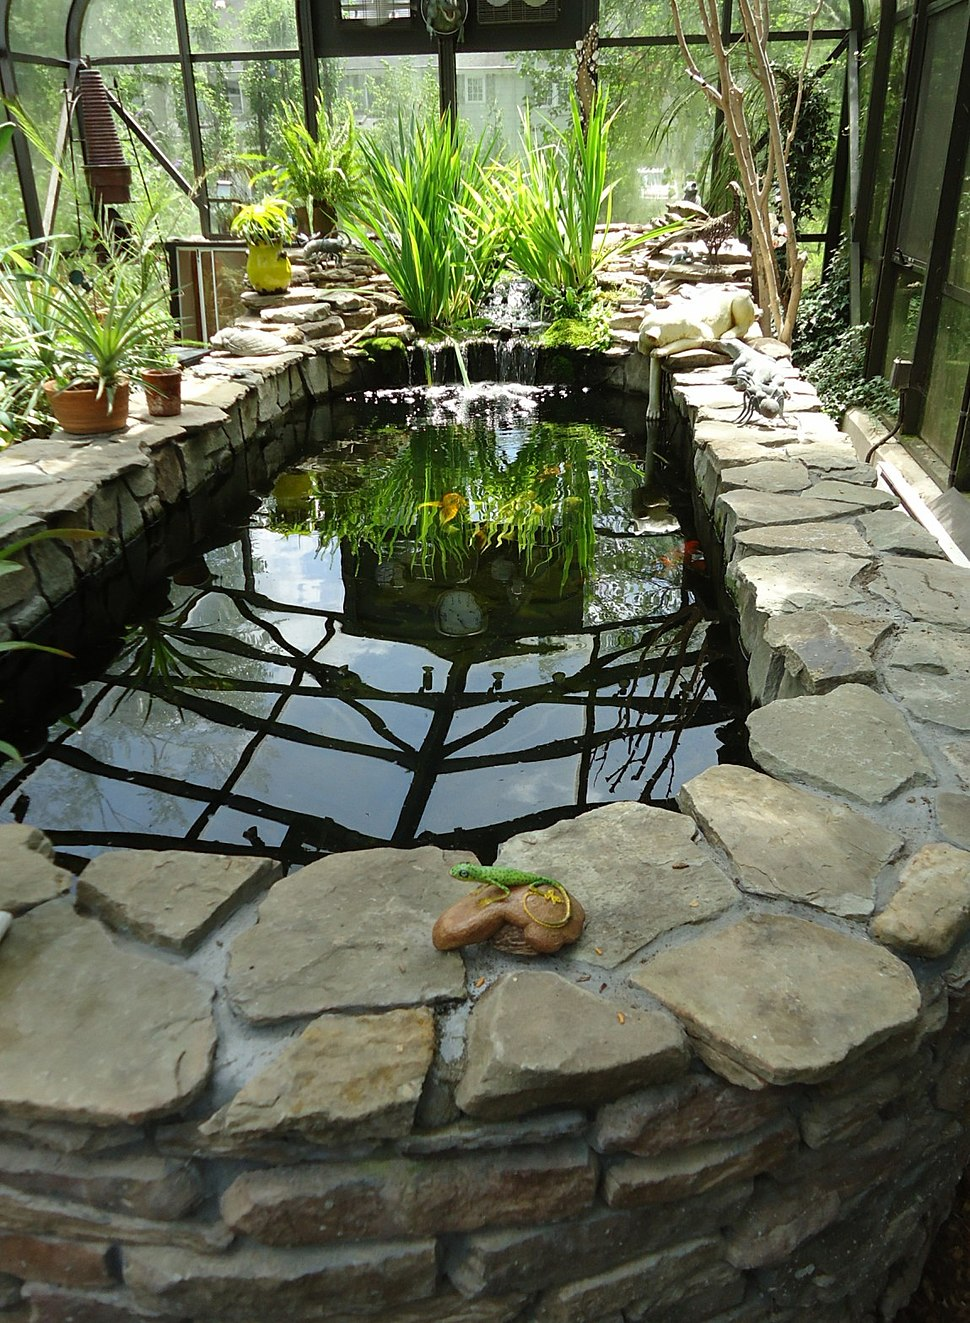 Outdoor heated fish tank enclosed by glass plus reflections